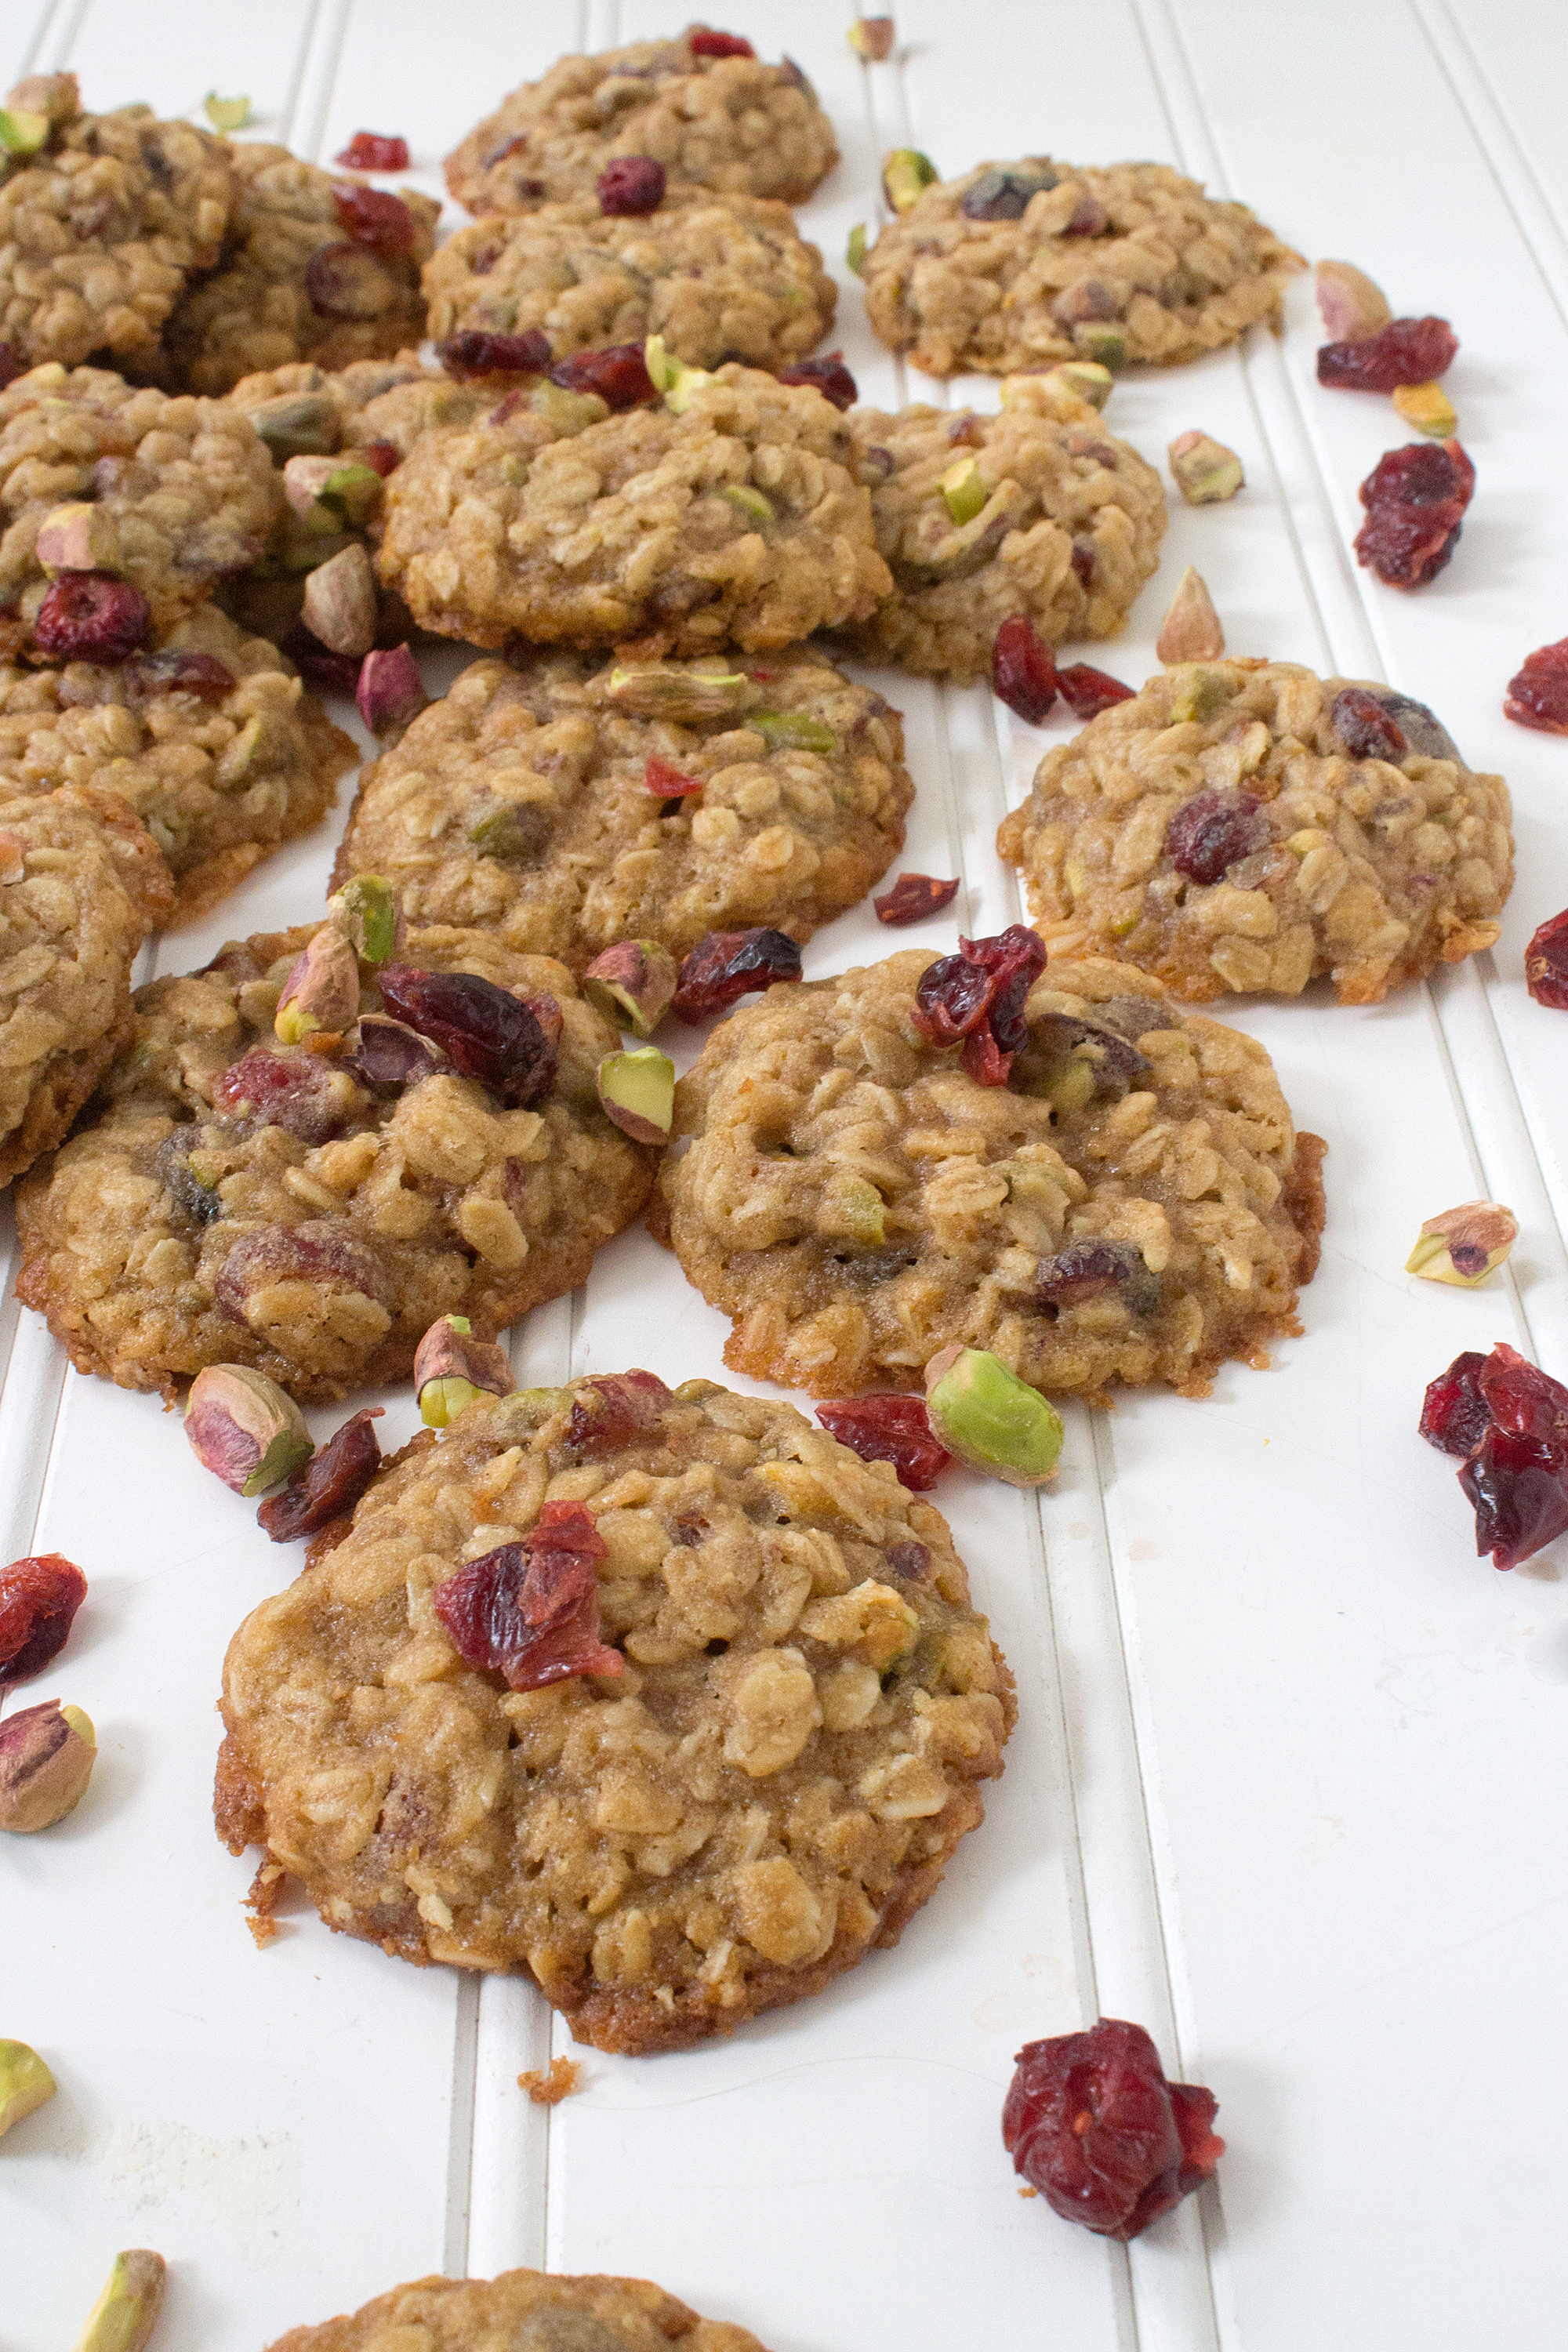 The perfect sweet + salty cookie: Oatmeal Cookies with Pistachios and Dried Cranberries. Get the recipe: Unusuallylovely.com